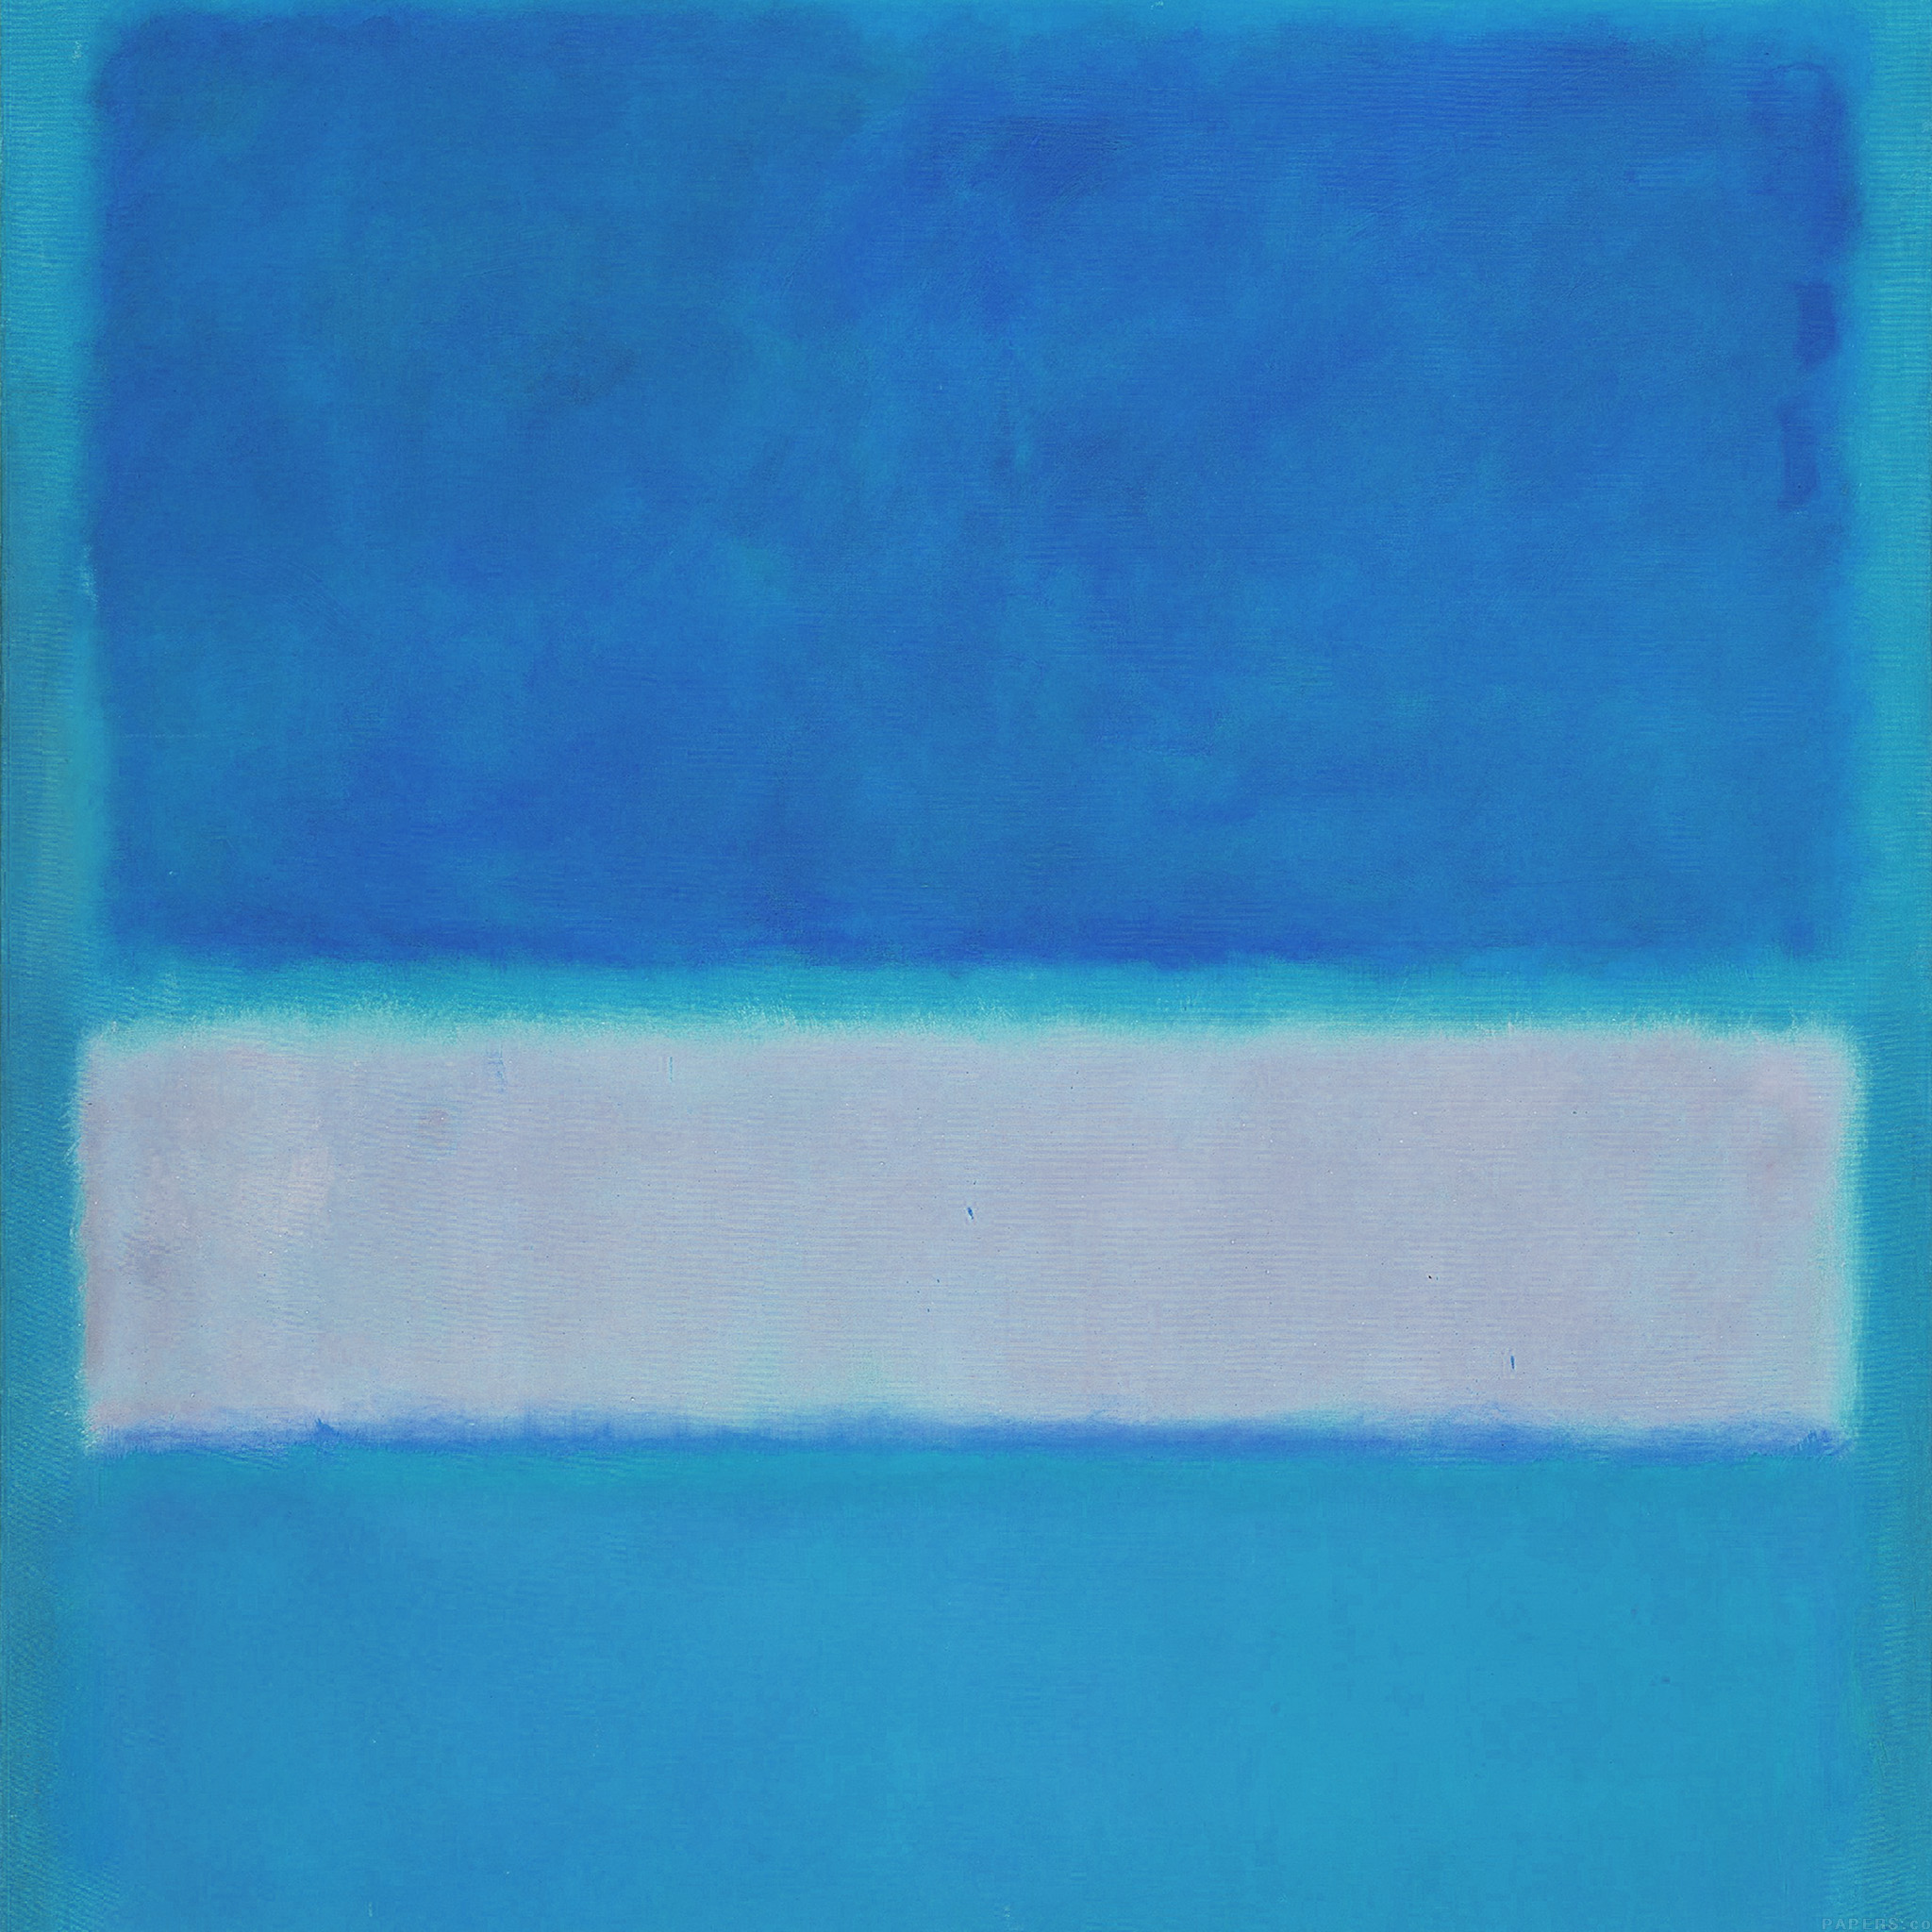 al73-mark-rothko-style-paint-art-blue-classic - Papers.co